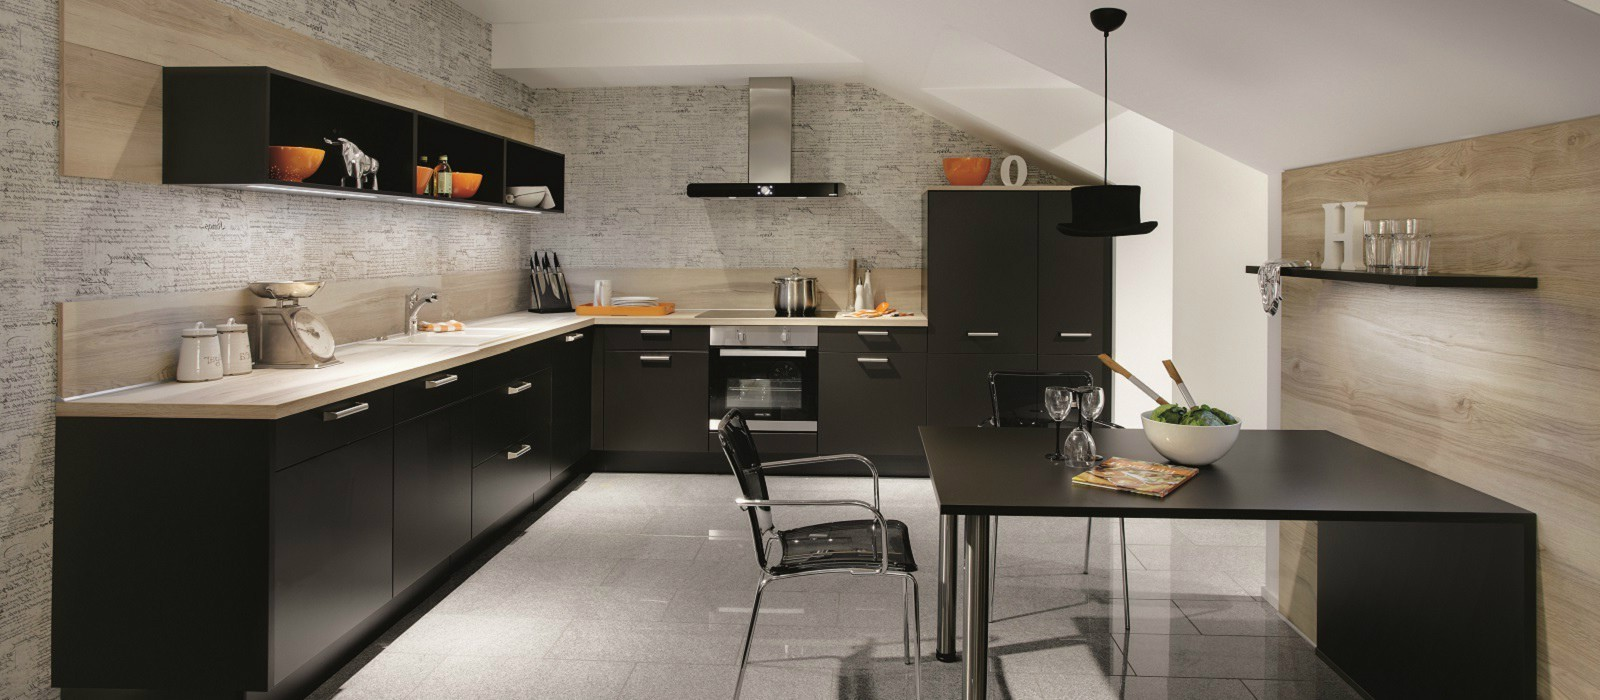 Meuble de cuisine encastrable maison design for Cuisine encastrable